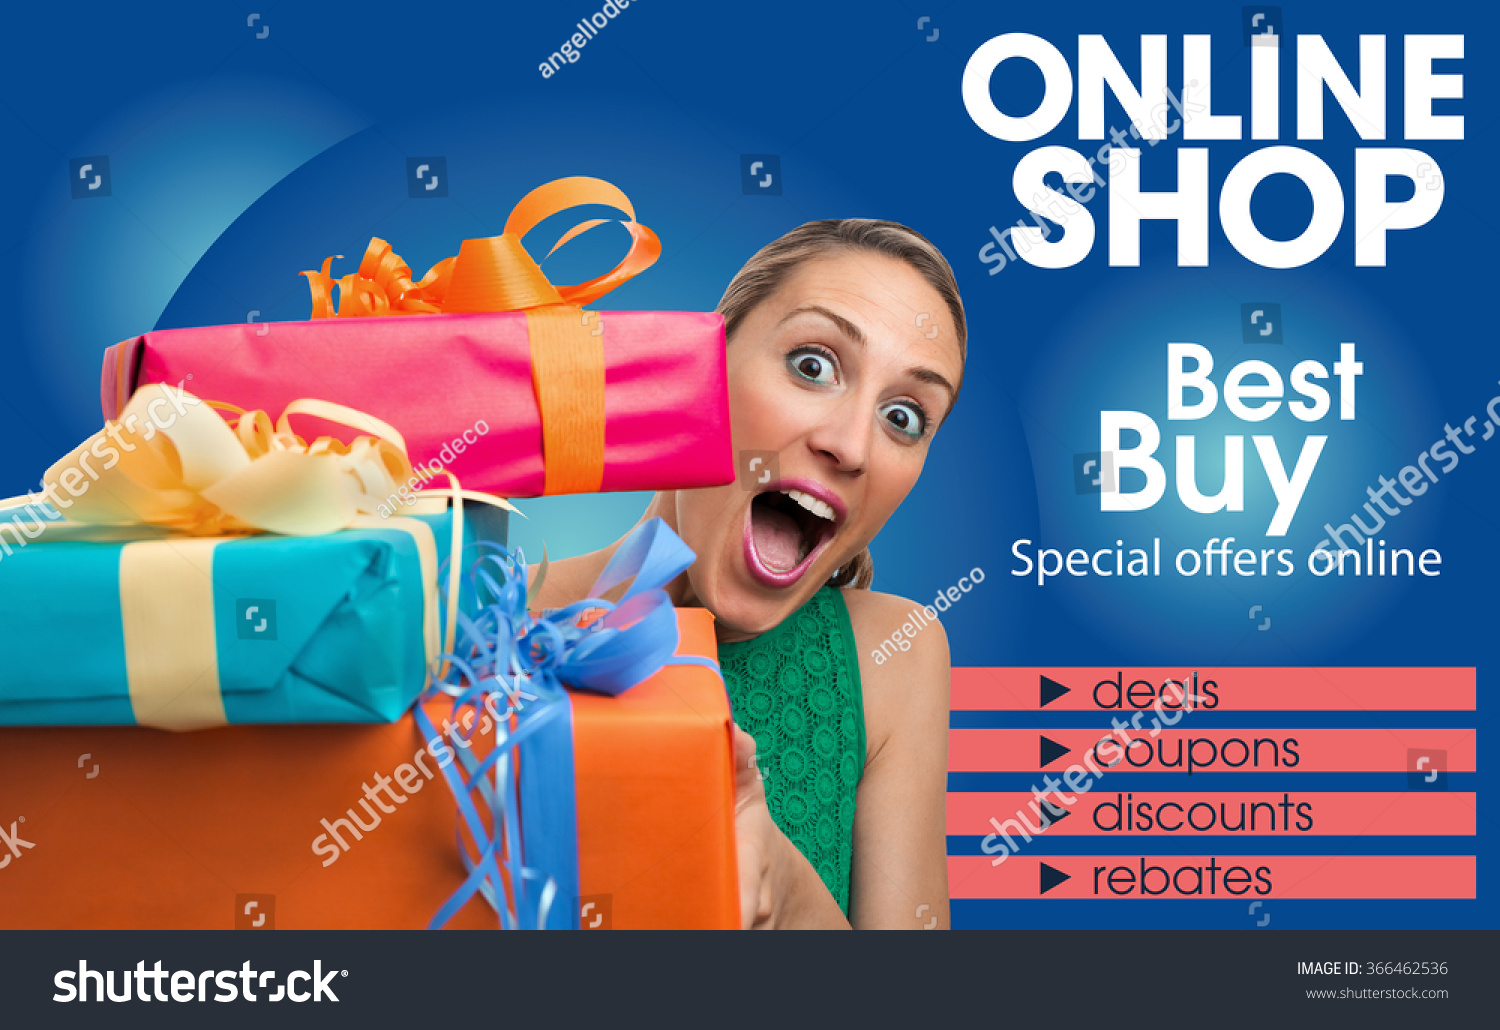 Generic brochure design template shop online stock photo for Blueprint online